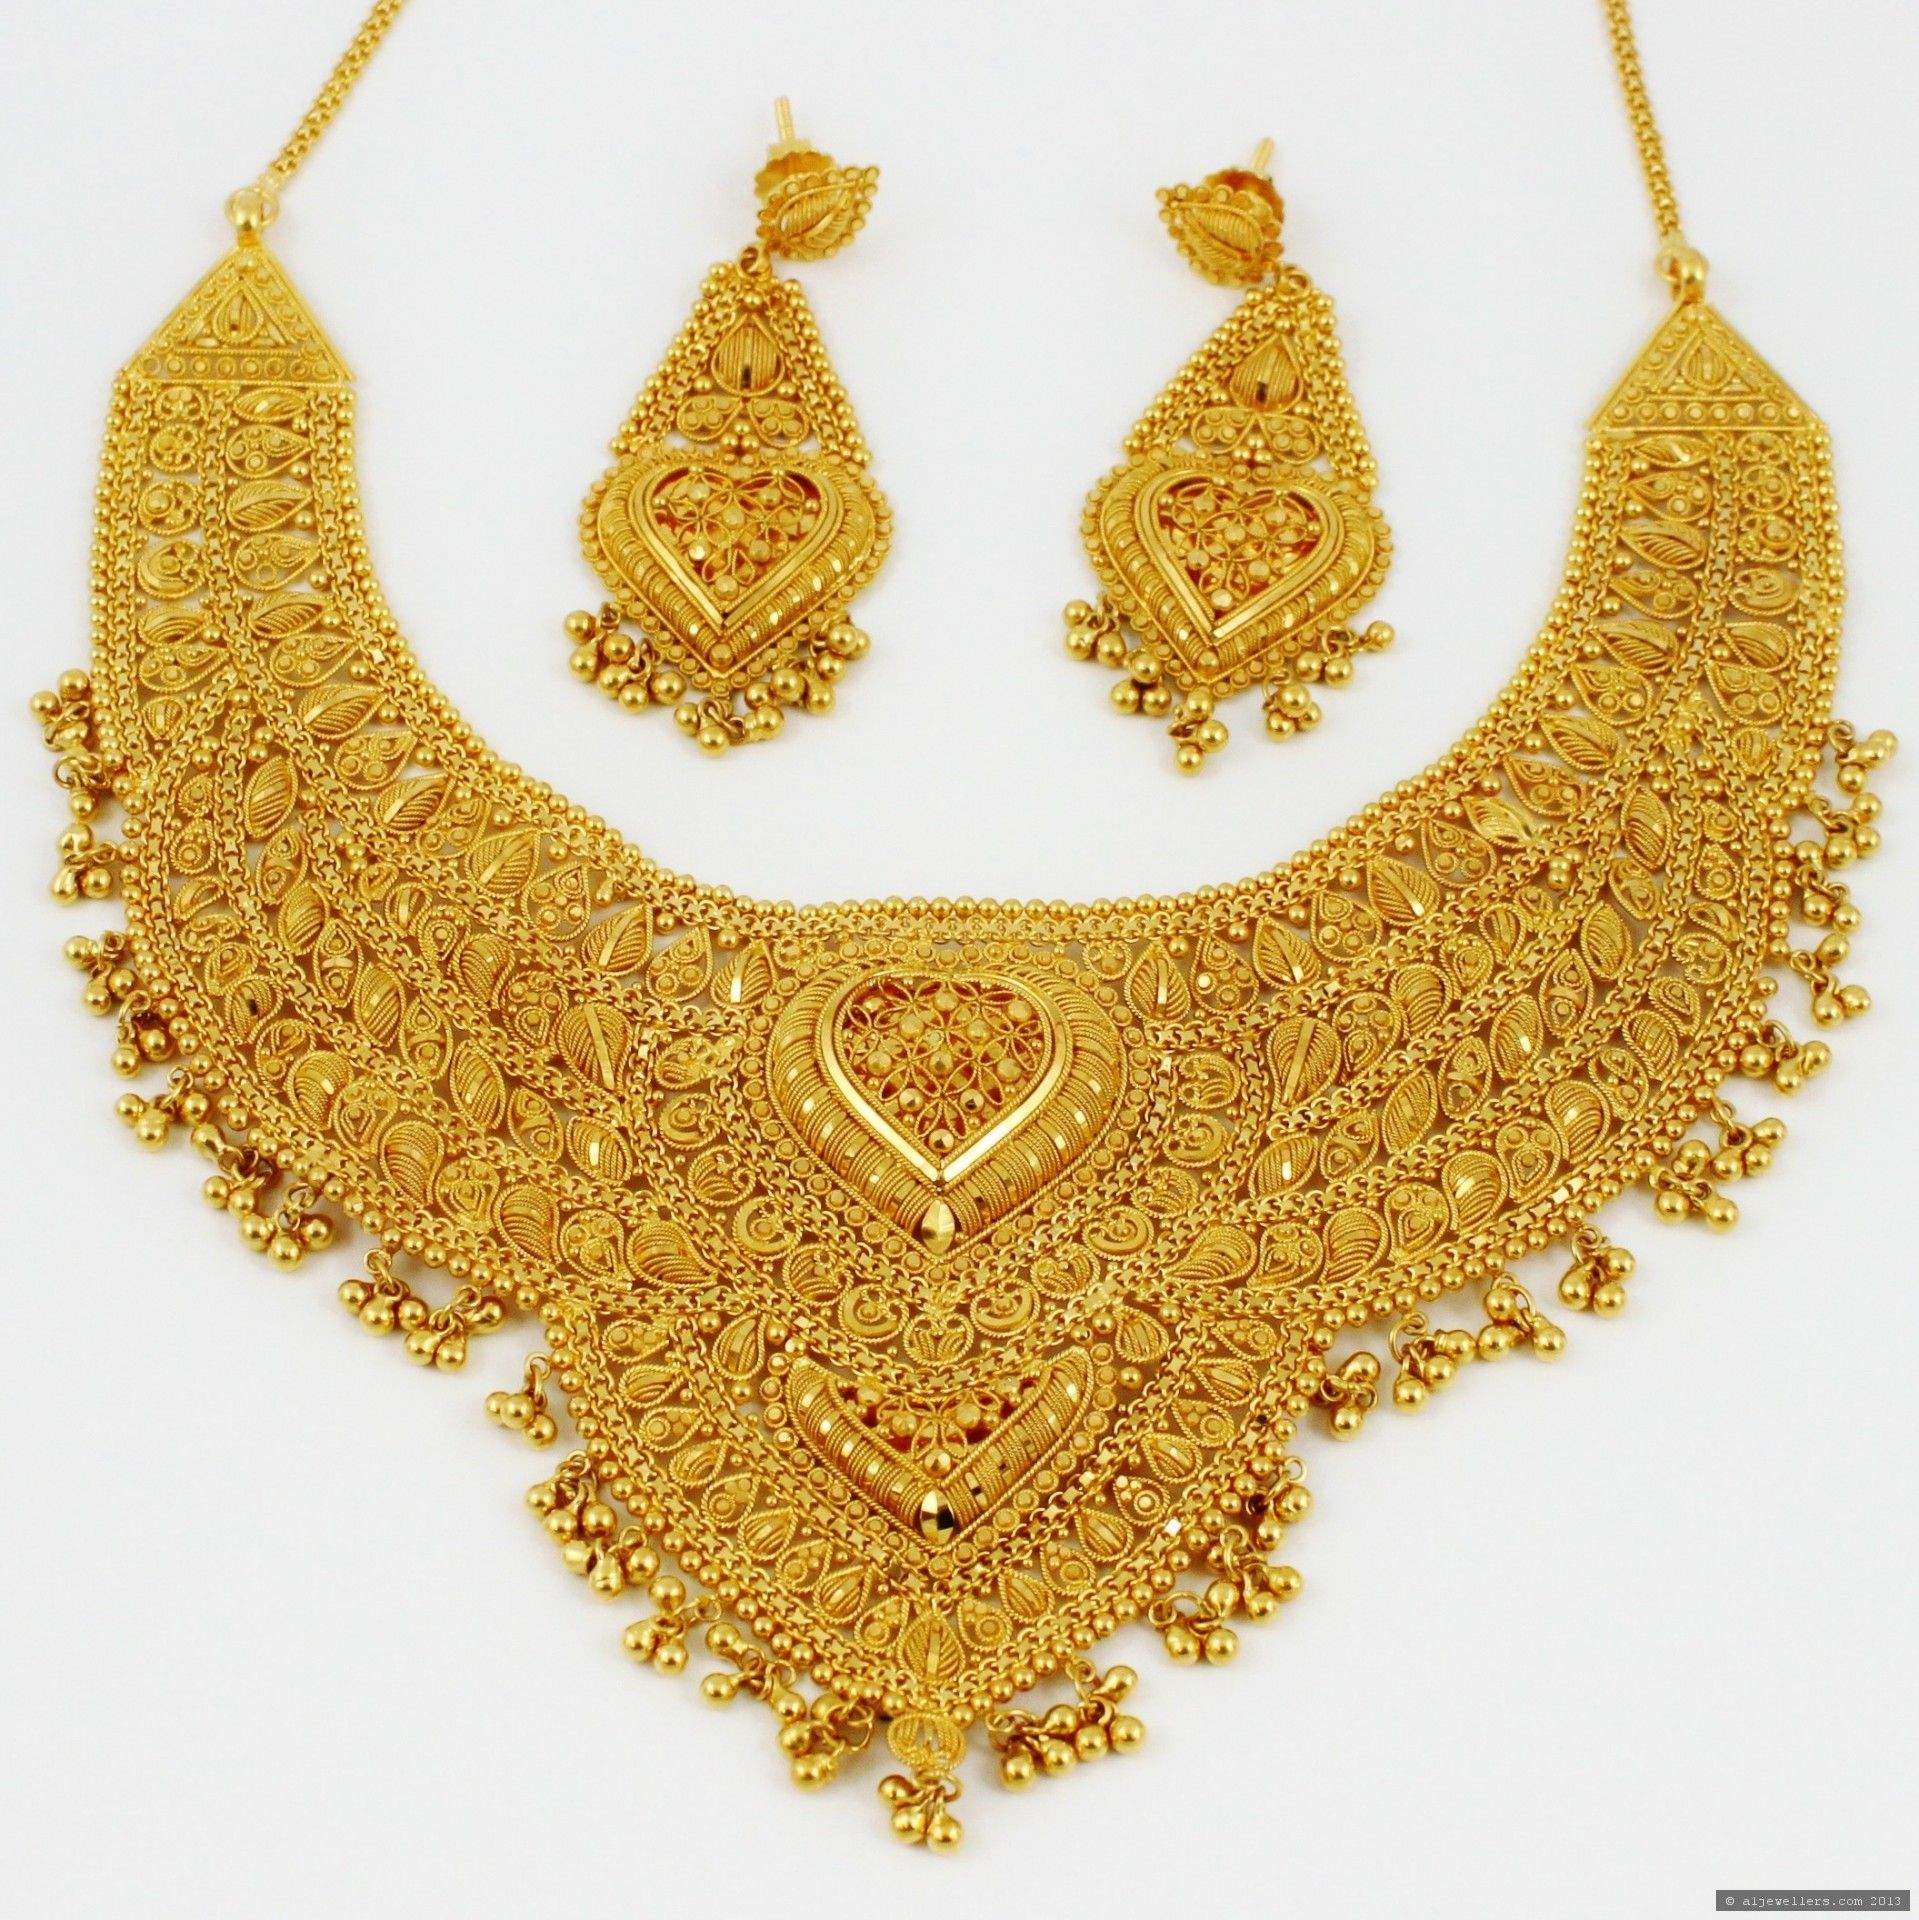 Pai jewellers gold necklace designs latest indian jewellery designs - Indian Gold Jewellery See More Stunning Jewelry At Stellarpieces Com